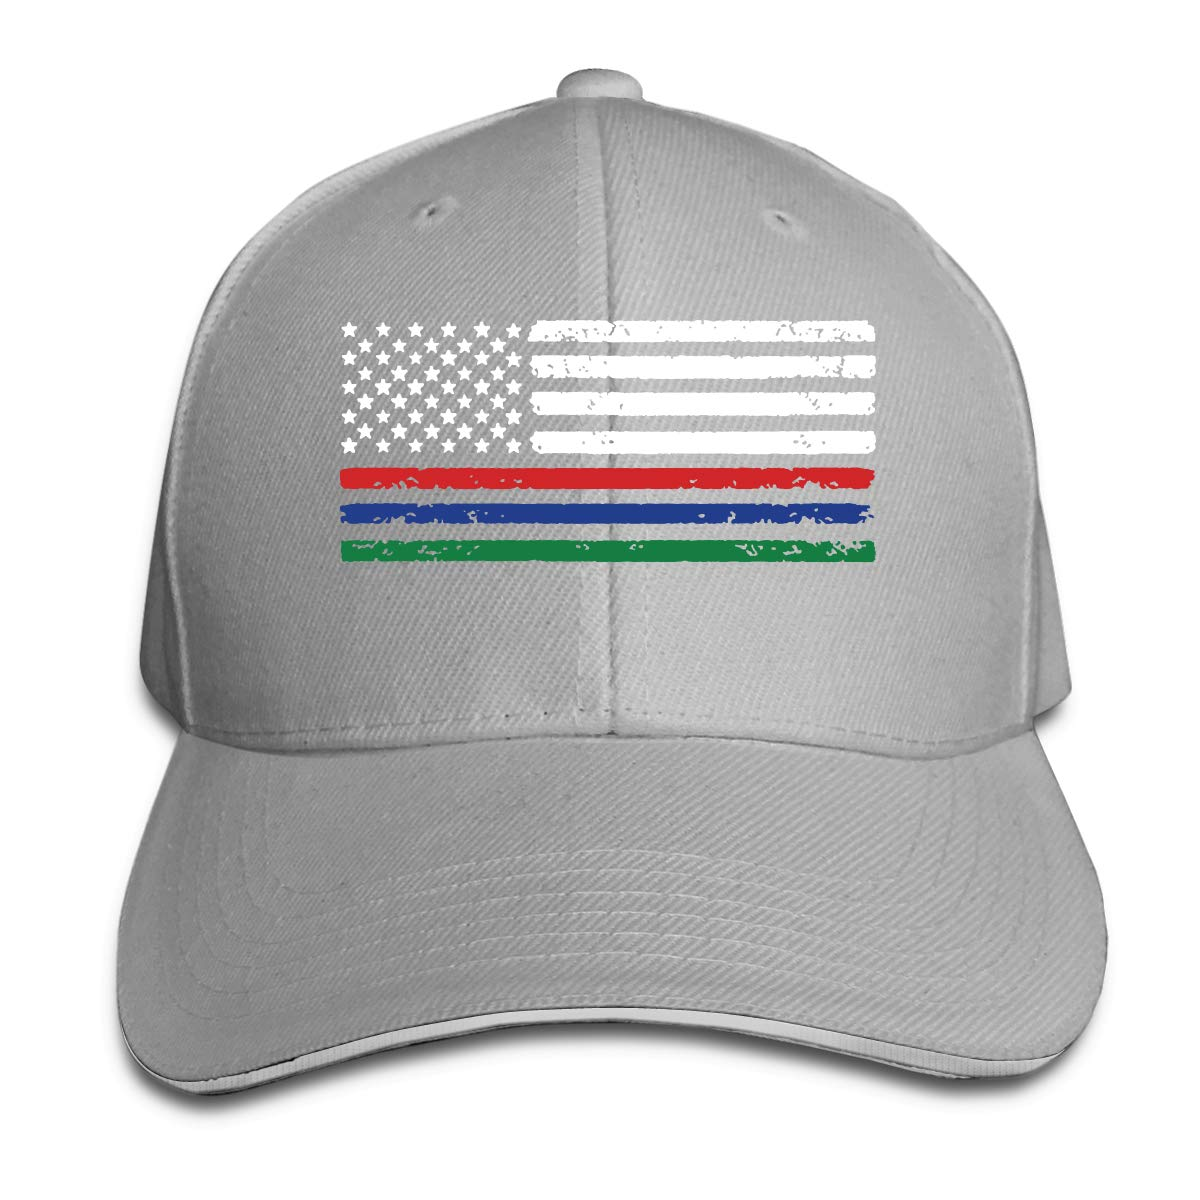 Mens and Womens Adjustable Thin Red Blue Green Line American Flag Peak Cap Cotton Duckbill Cap for Mens and Womens